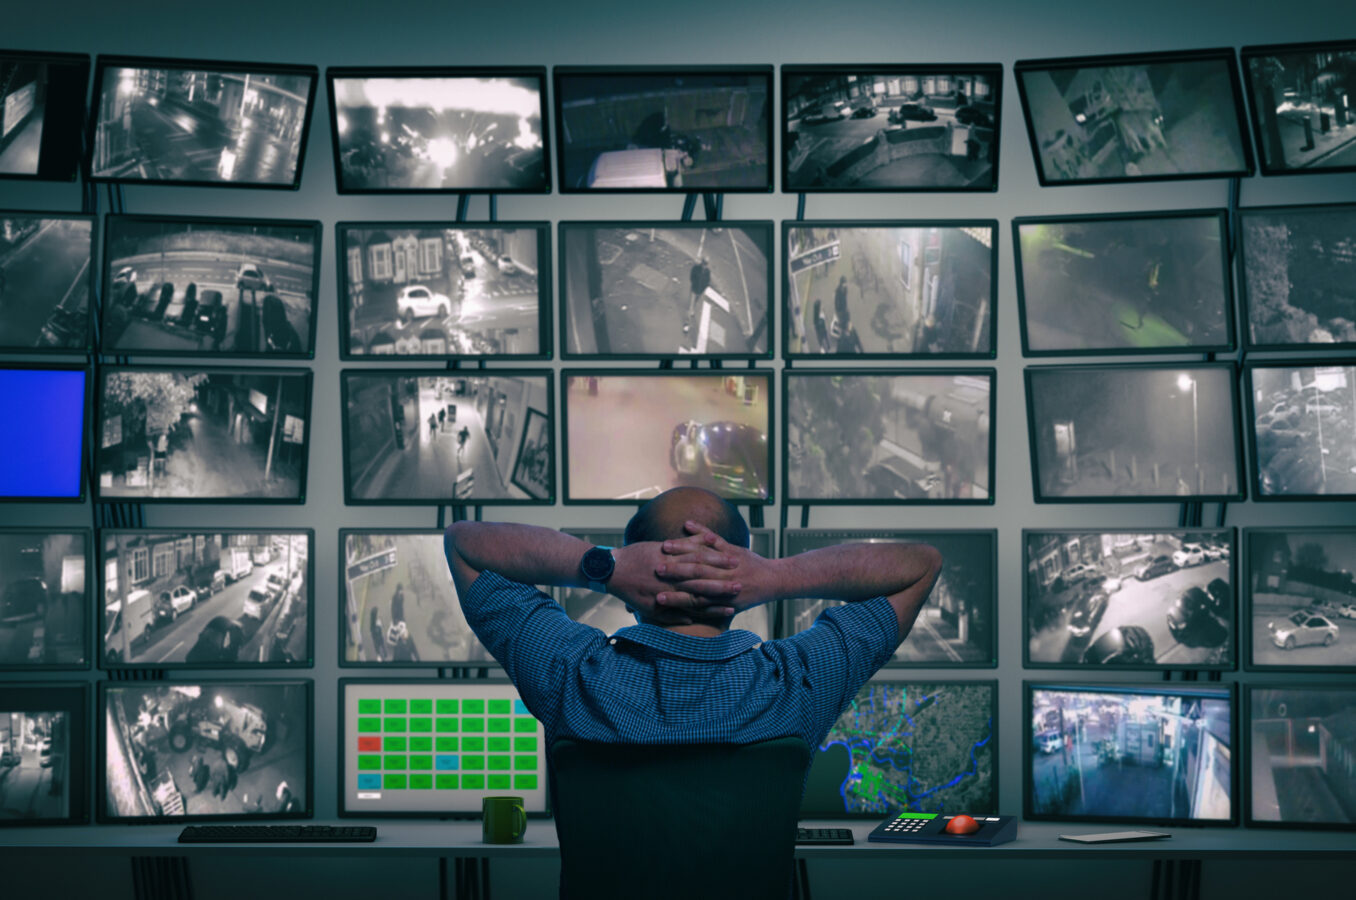 Surveillance and Micromanagement – a Tale From the Frontline